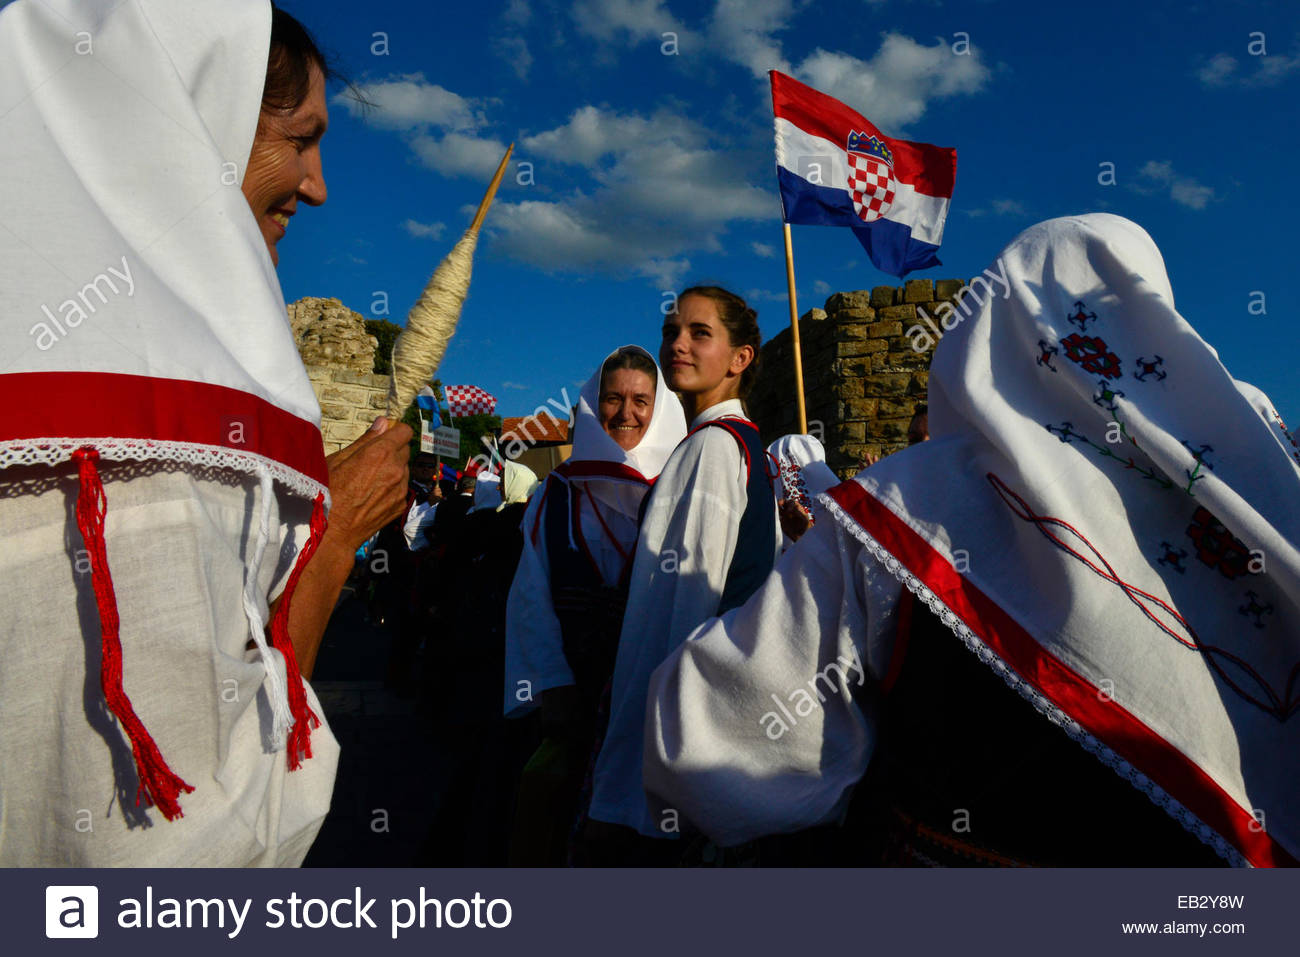 The Croatian delegation at the World Championship of Folklore. - Stock Image